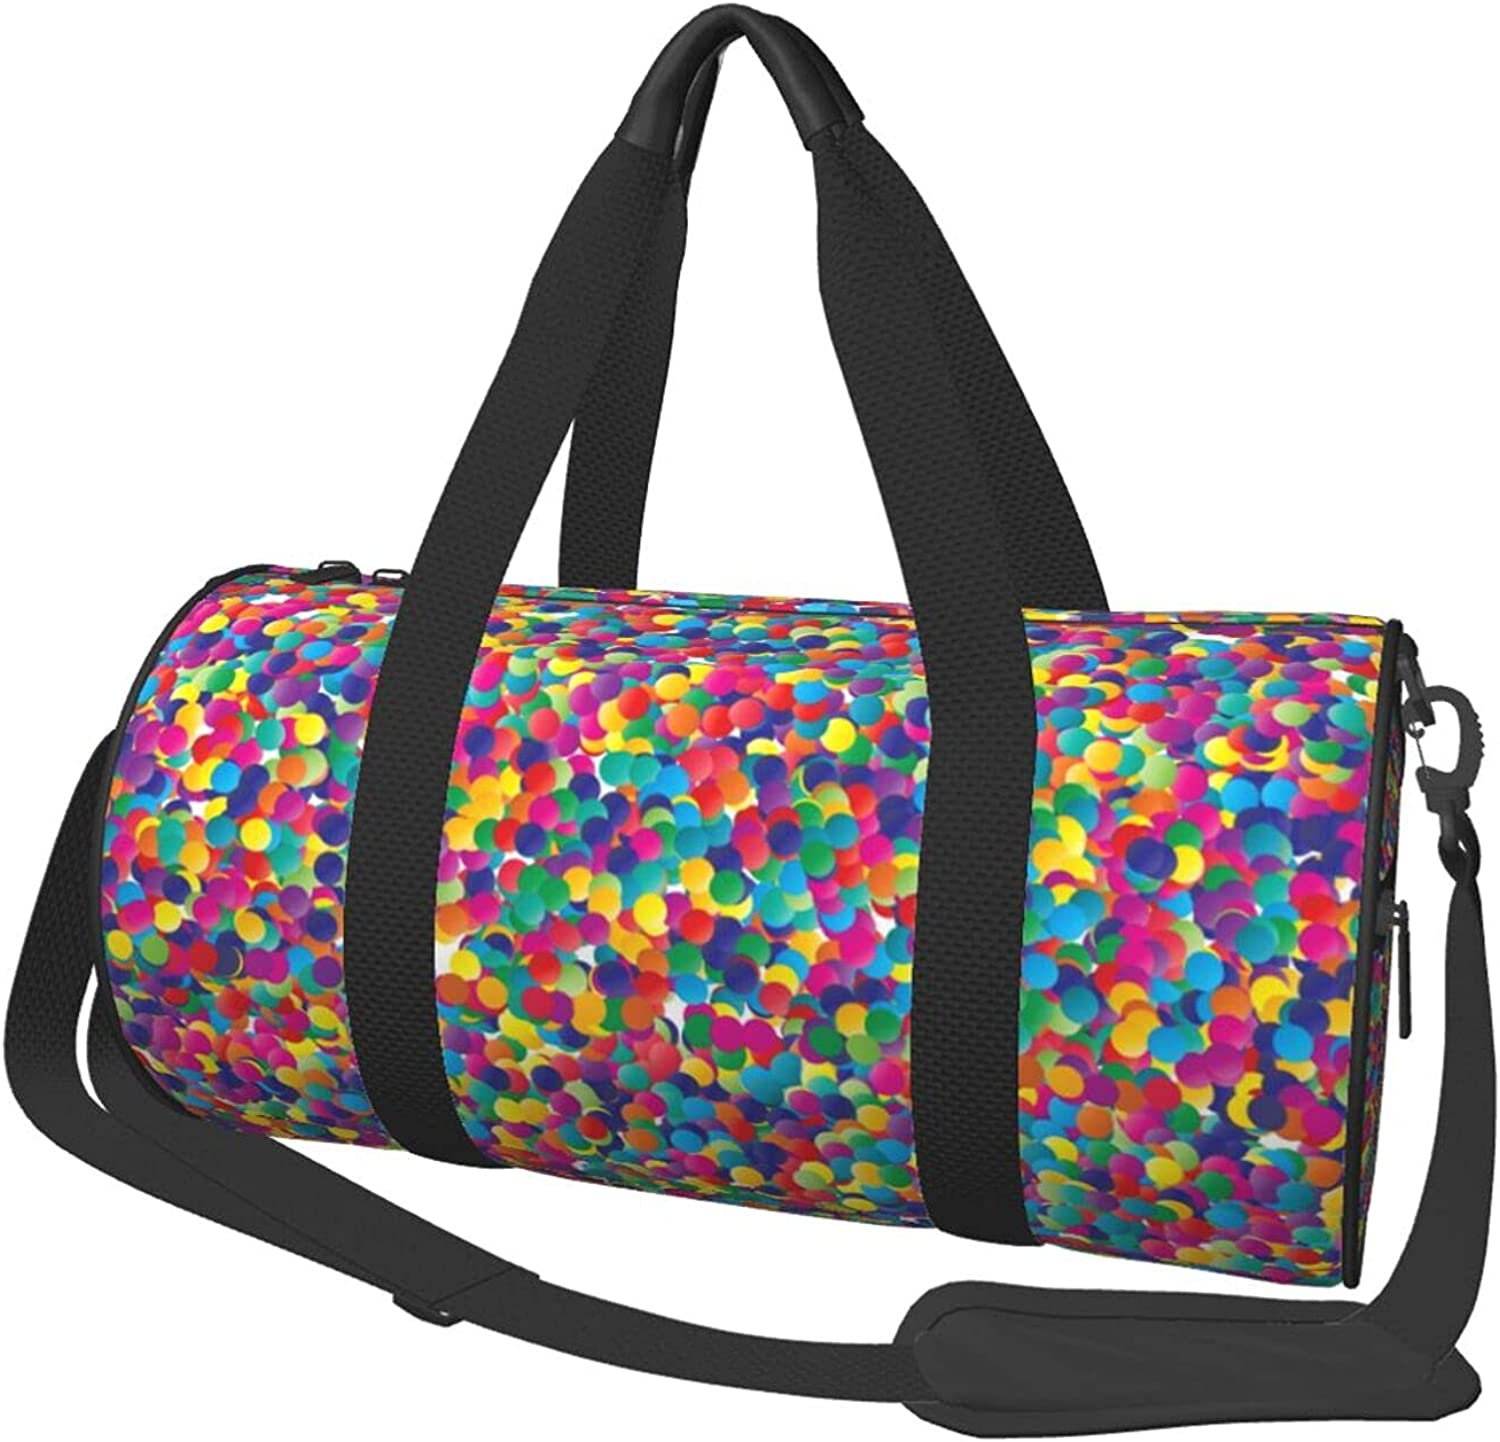 Special price Trust Colorful Polka Dots And Confetti Bag Travel Packable Celebration